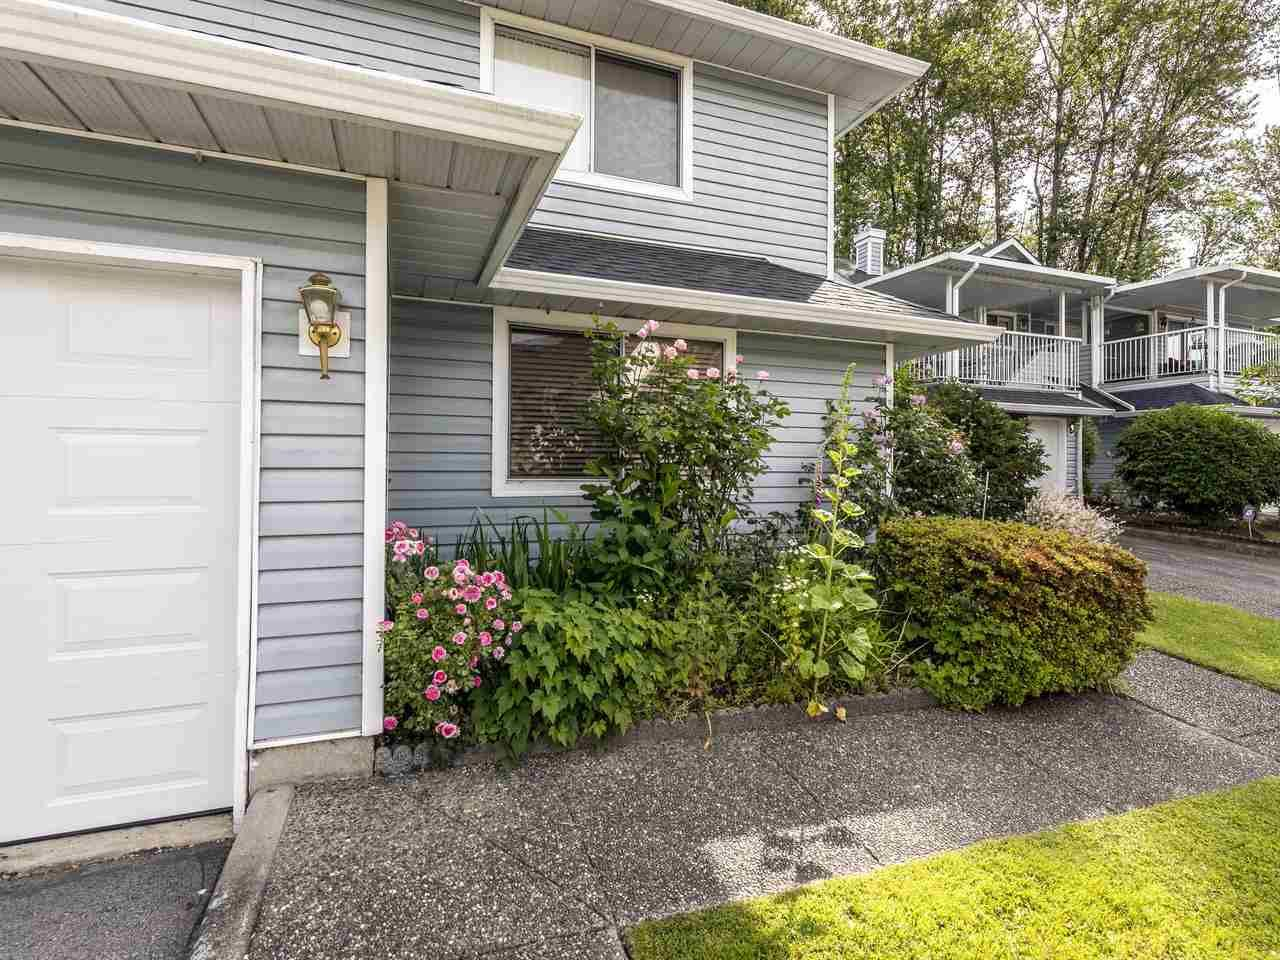 """Photo 4: Photos: 127 22555 116 Avenue in Maple Ridge: East Central Townhouse for sale in """"HILLSIDE"""" : MLS®# R2493046"""